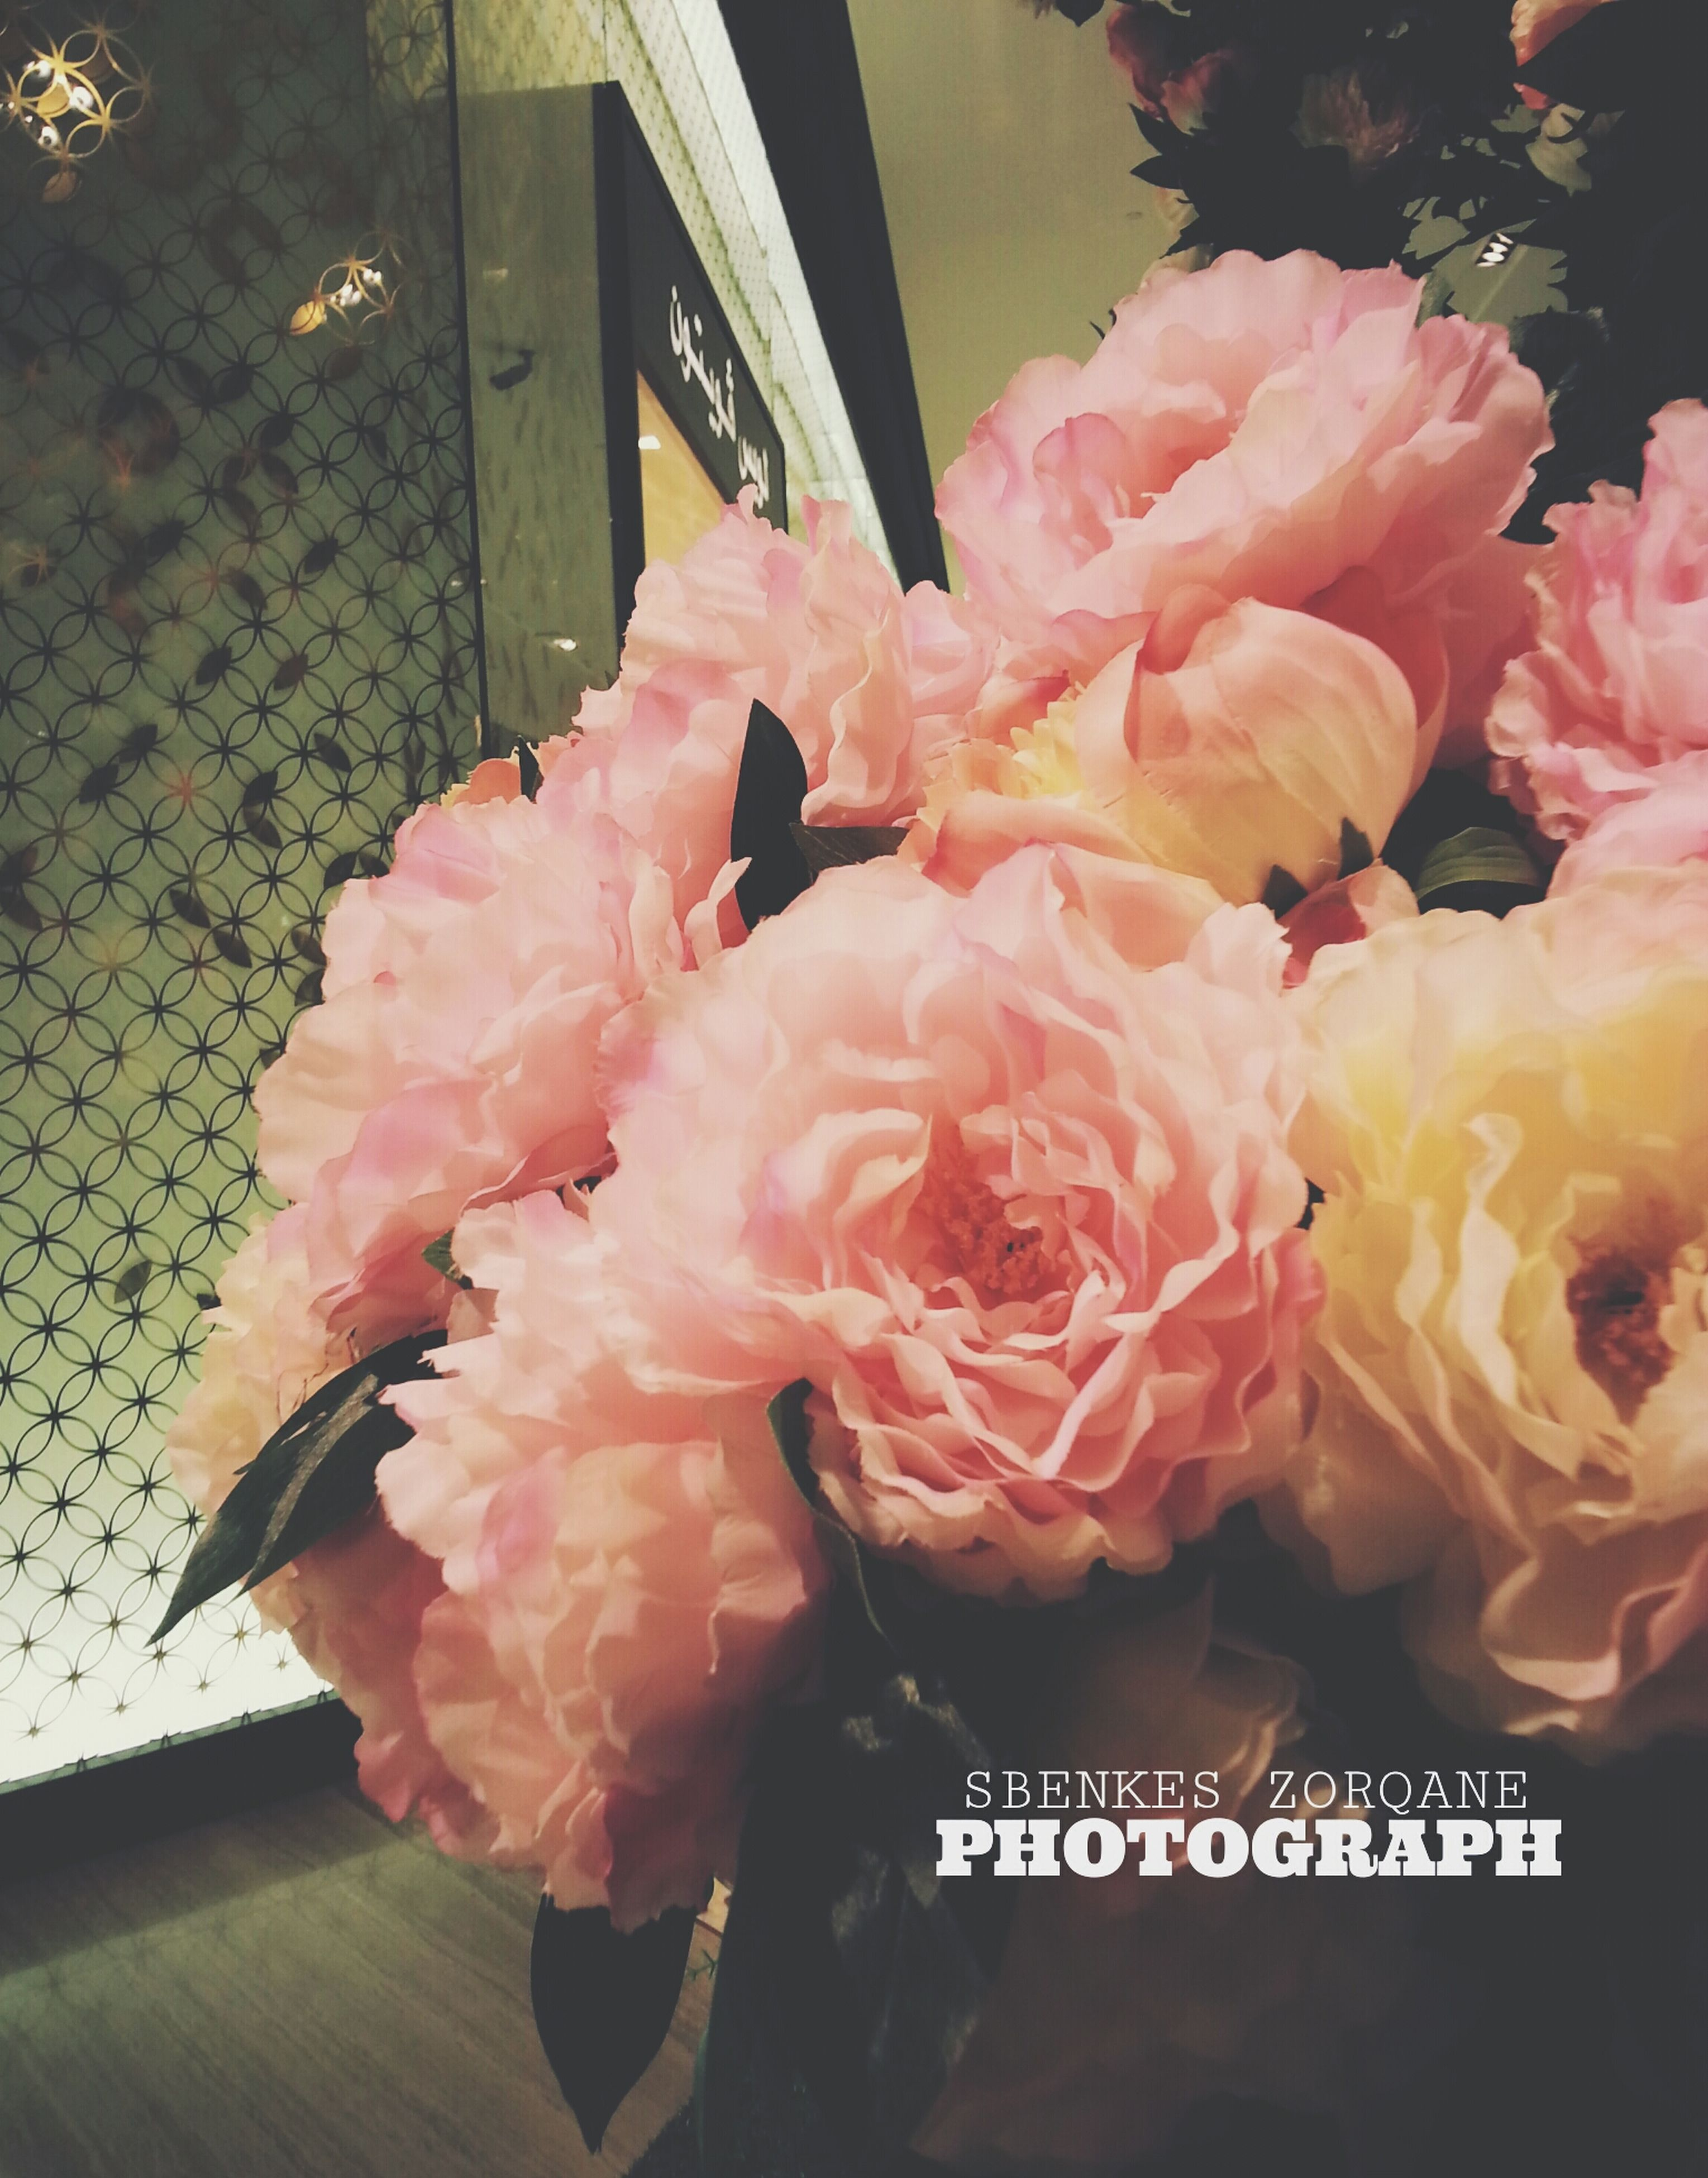 flower, freshness, petal, fragility, pink color, flower head, rose - flower, beauty in nature, close-up, indoors, bouquet, nature, growth, blooming, bunch of flowers, rose, day, no people, high angle view, plant